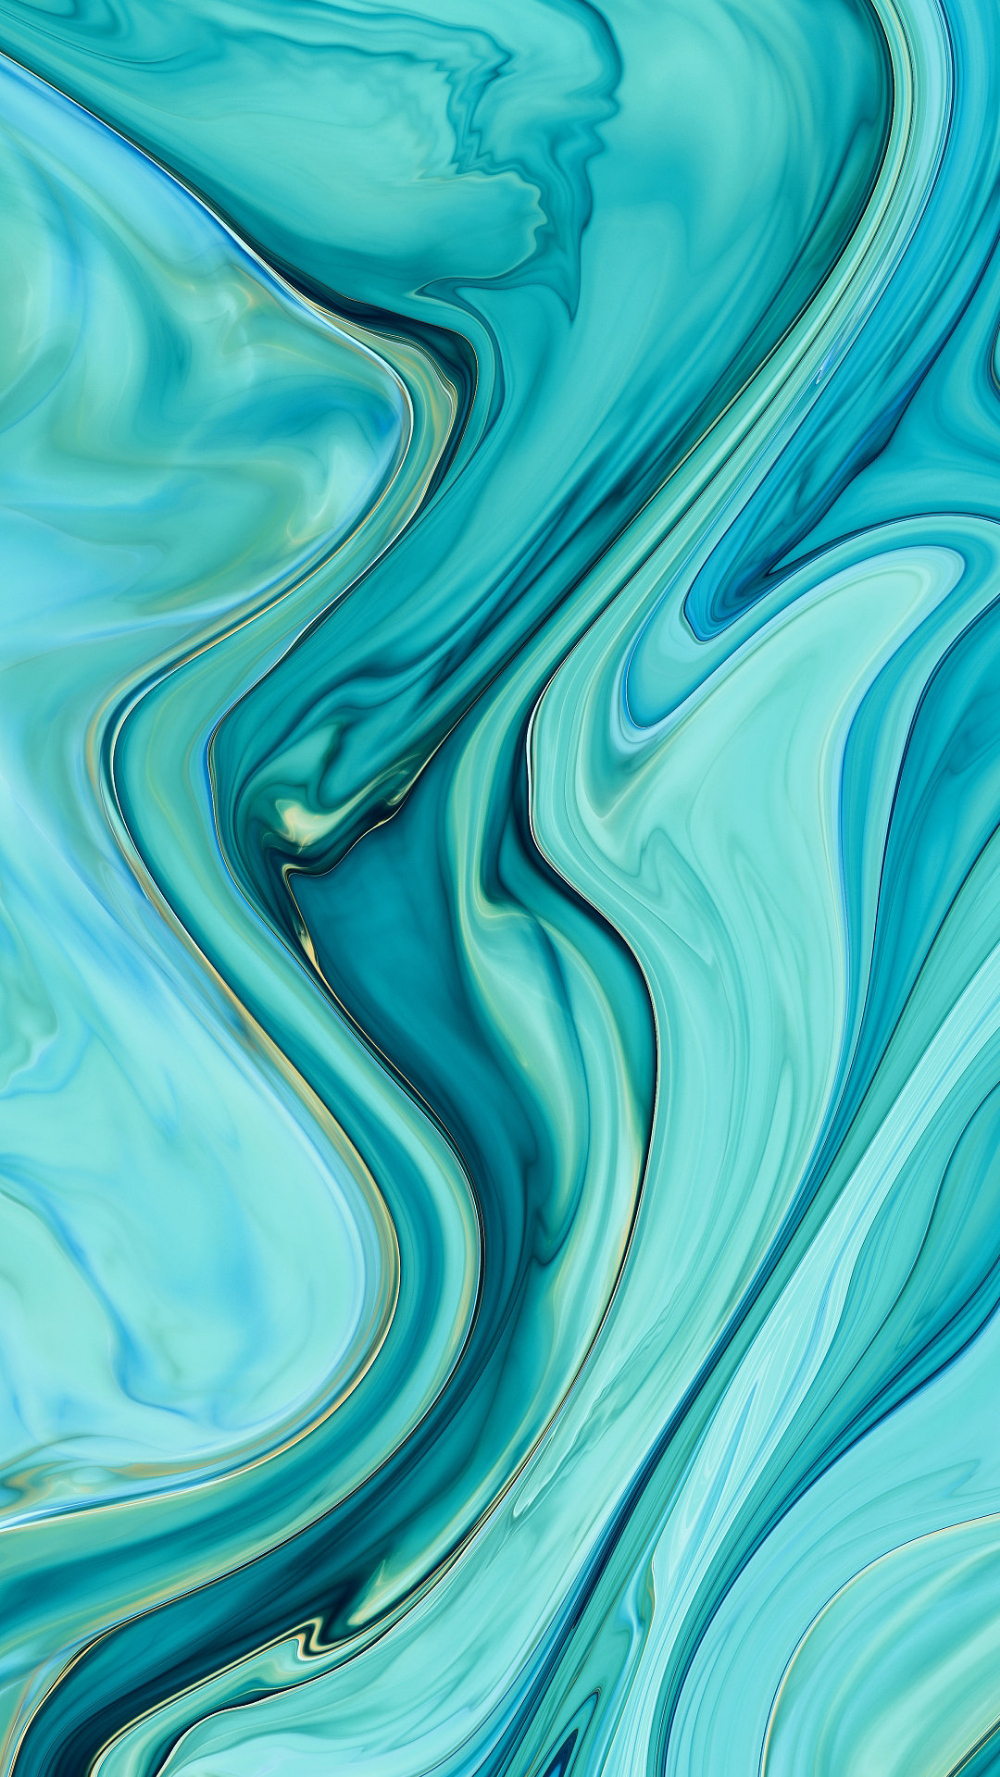 Iphone Blue Green Winding Gradient Visual Wallpaper Background Wallpaper Backgr Abstract Iphone Wallpaper Marble Wallpaper Phone Backgrounds Phone Wallpapers